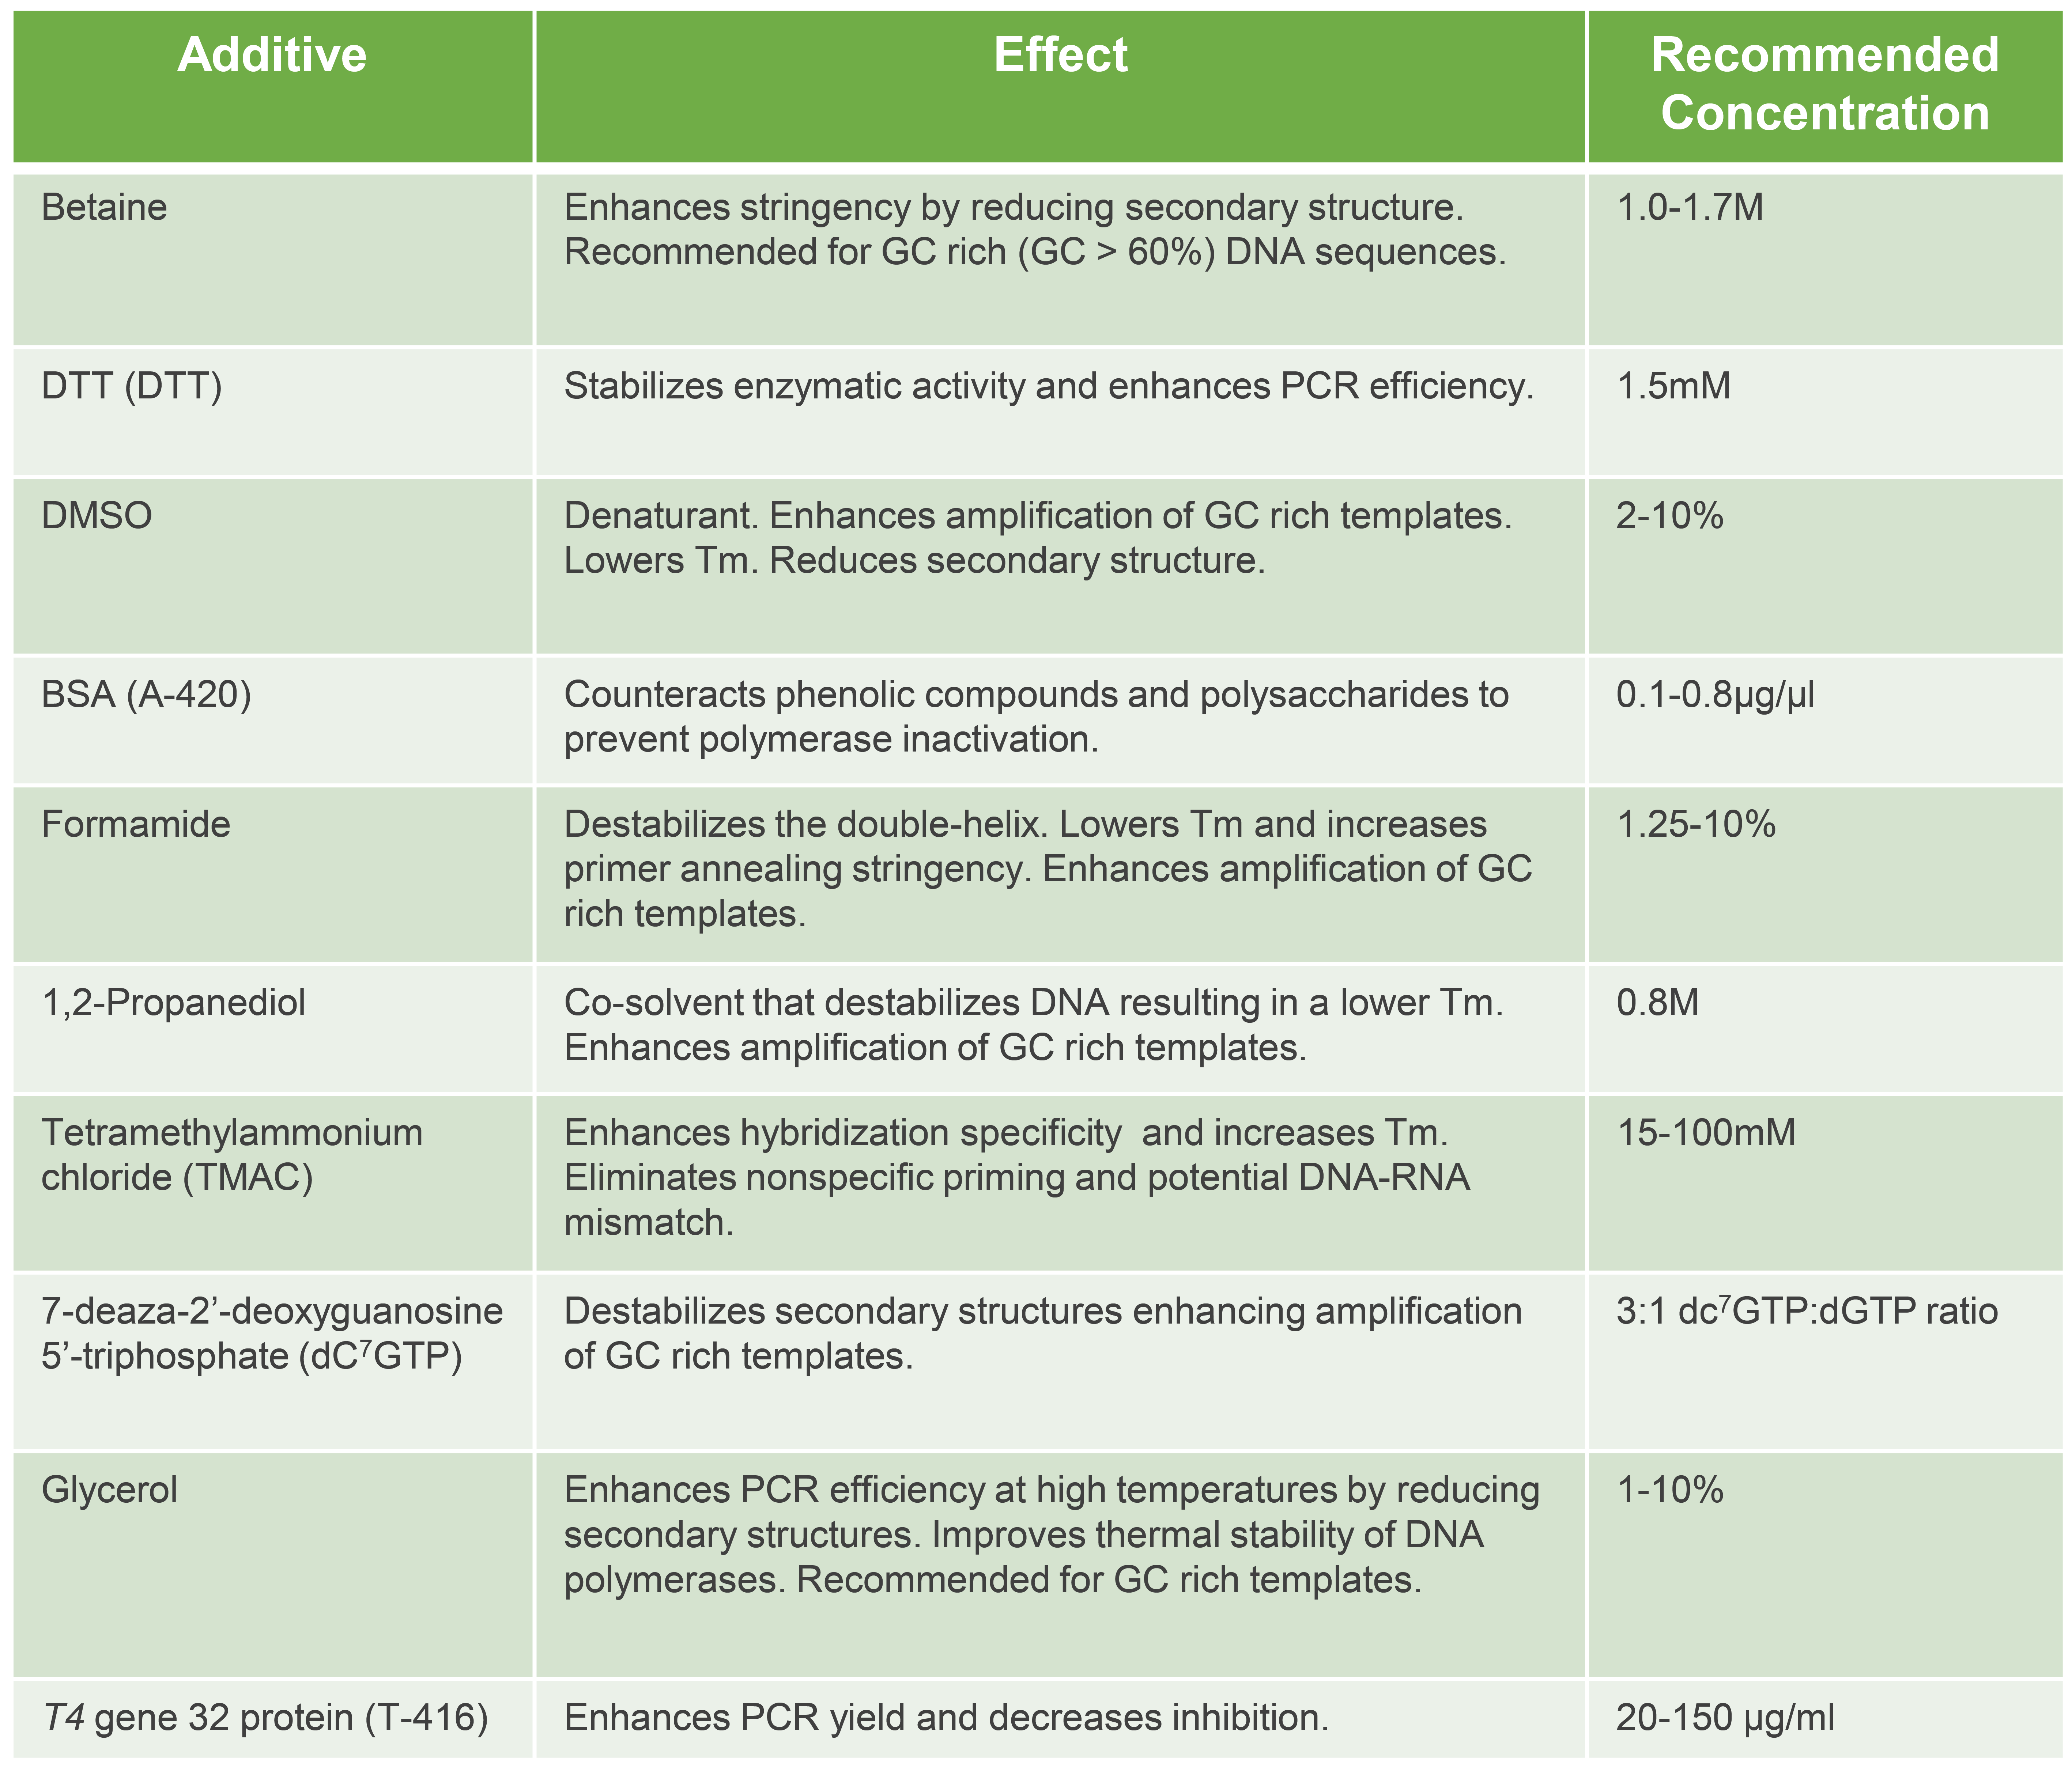 Optimize PCR with additives: Betaine, DTT, DMSO, BSA, Formamide, 1,2 propanediol, TMAC or Glycerol